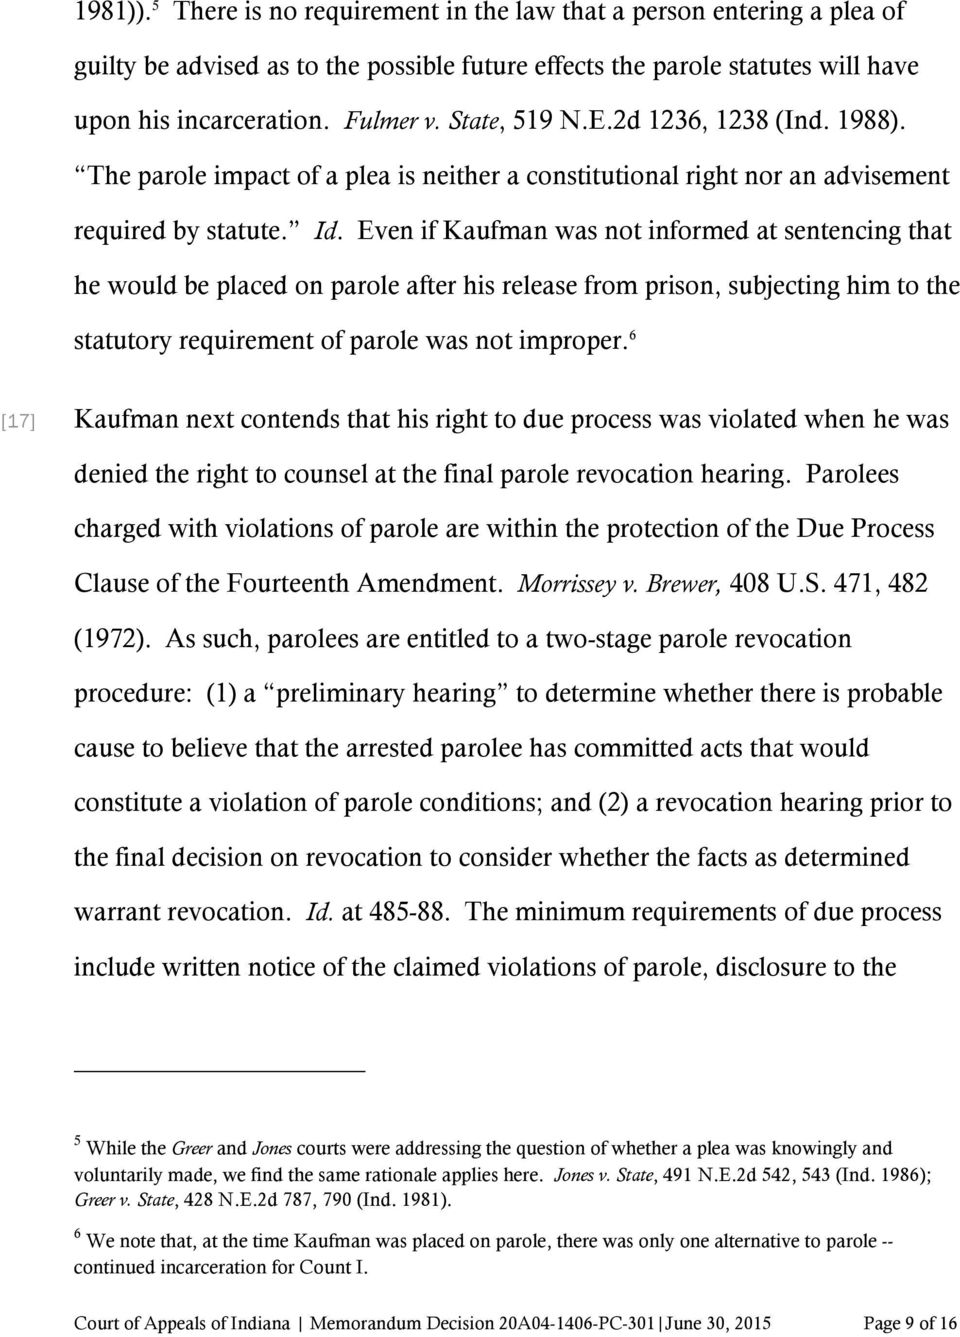 Even if Kaufman was not informed at sentencing that he would be placed on parole after his release from prison, subjecting him to the statutory requirement of parole was not improper.